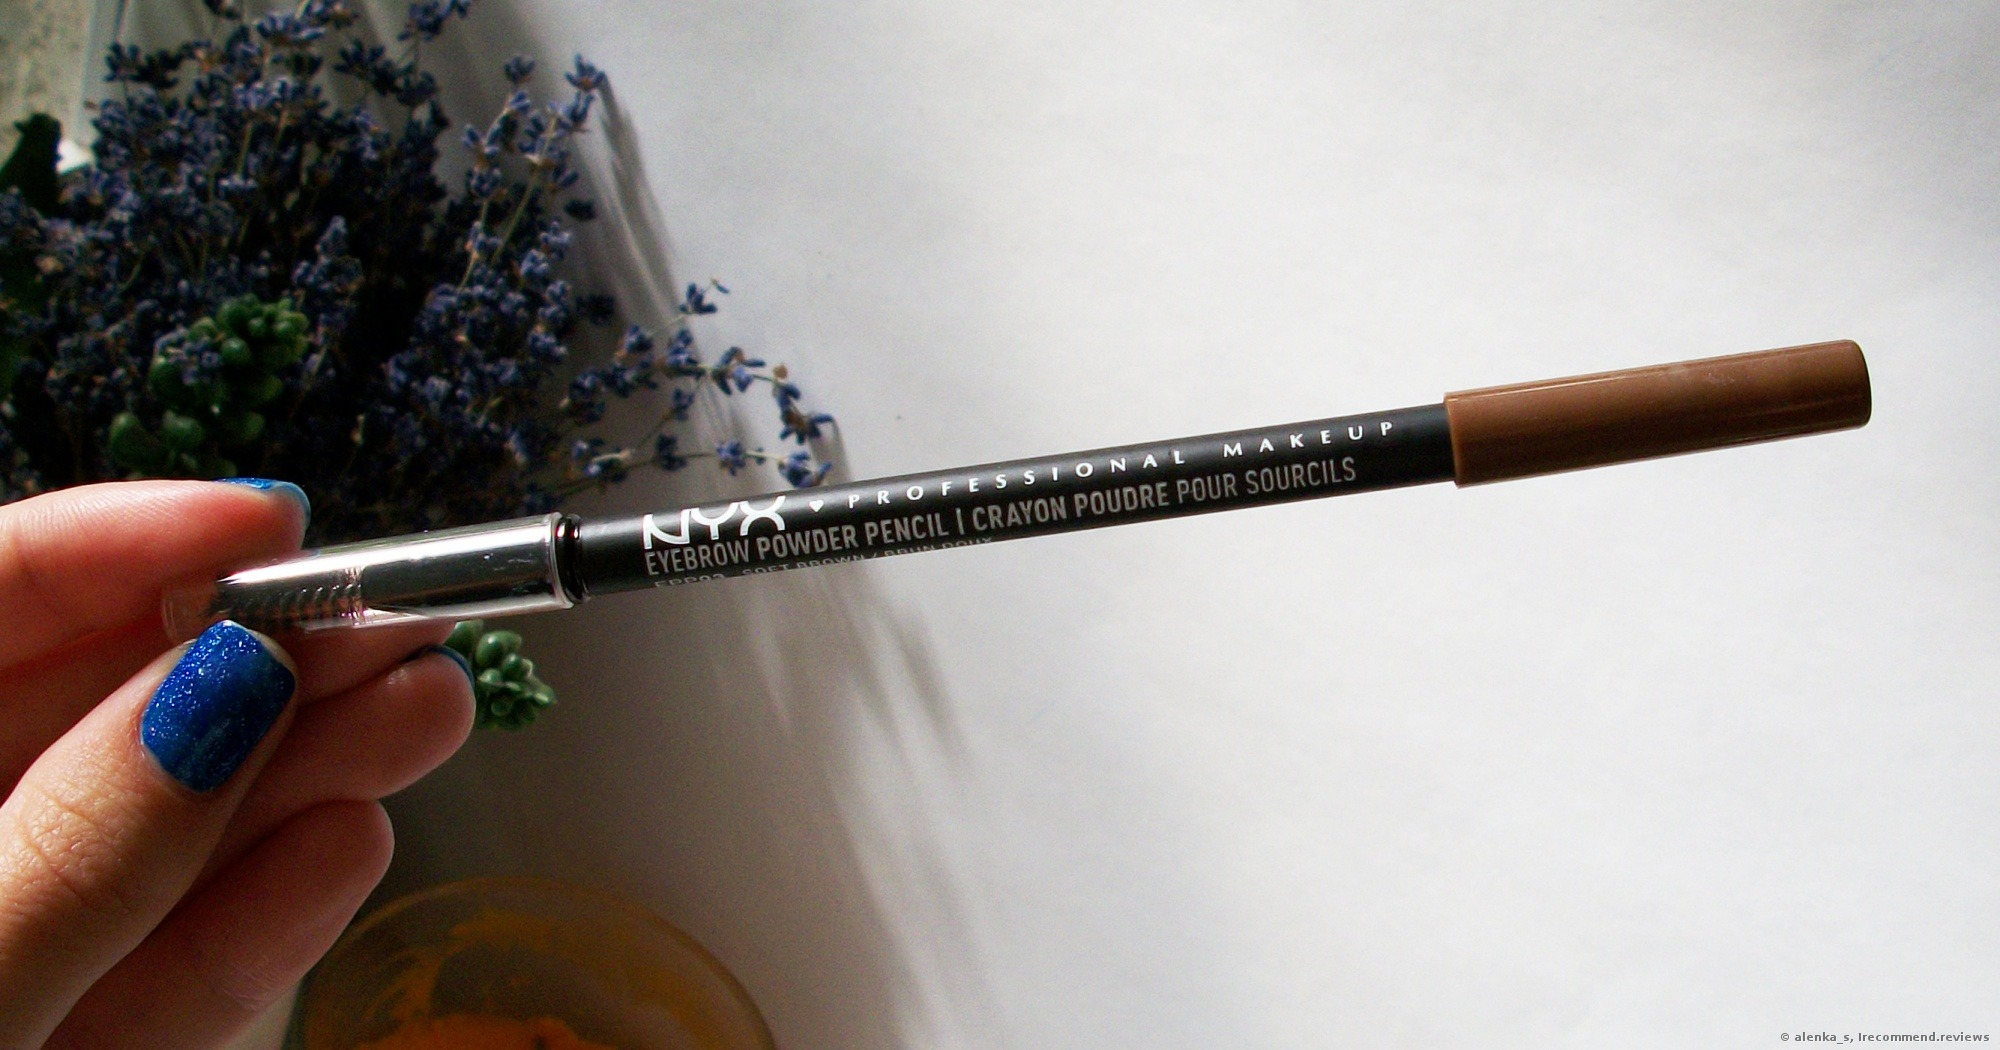 Nyx Eyebrow Pencil Powder Pencil For Naturally Looking And